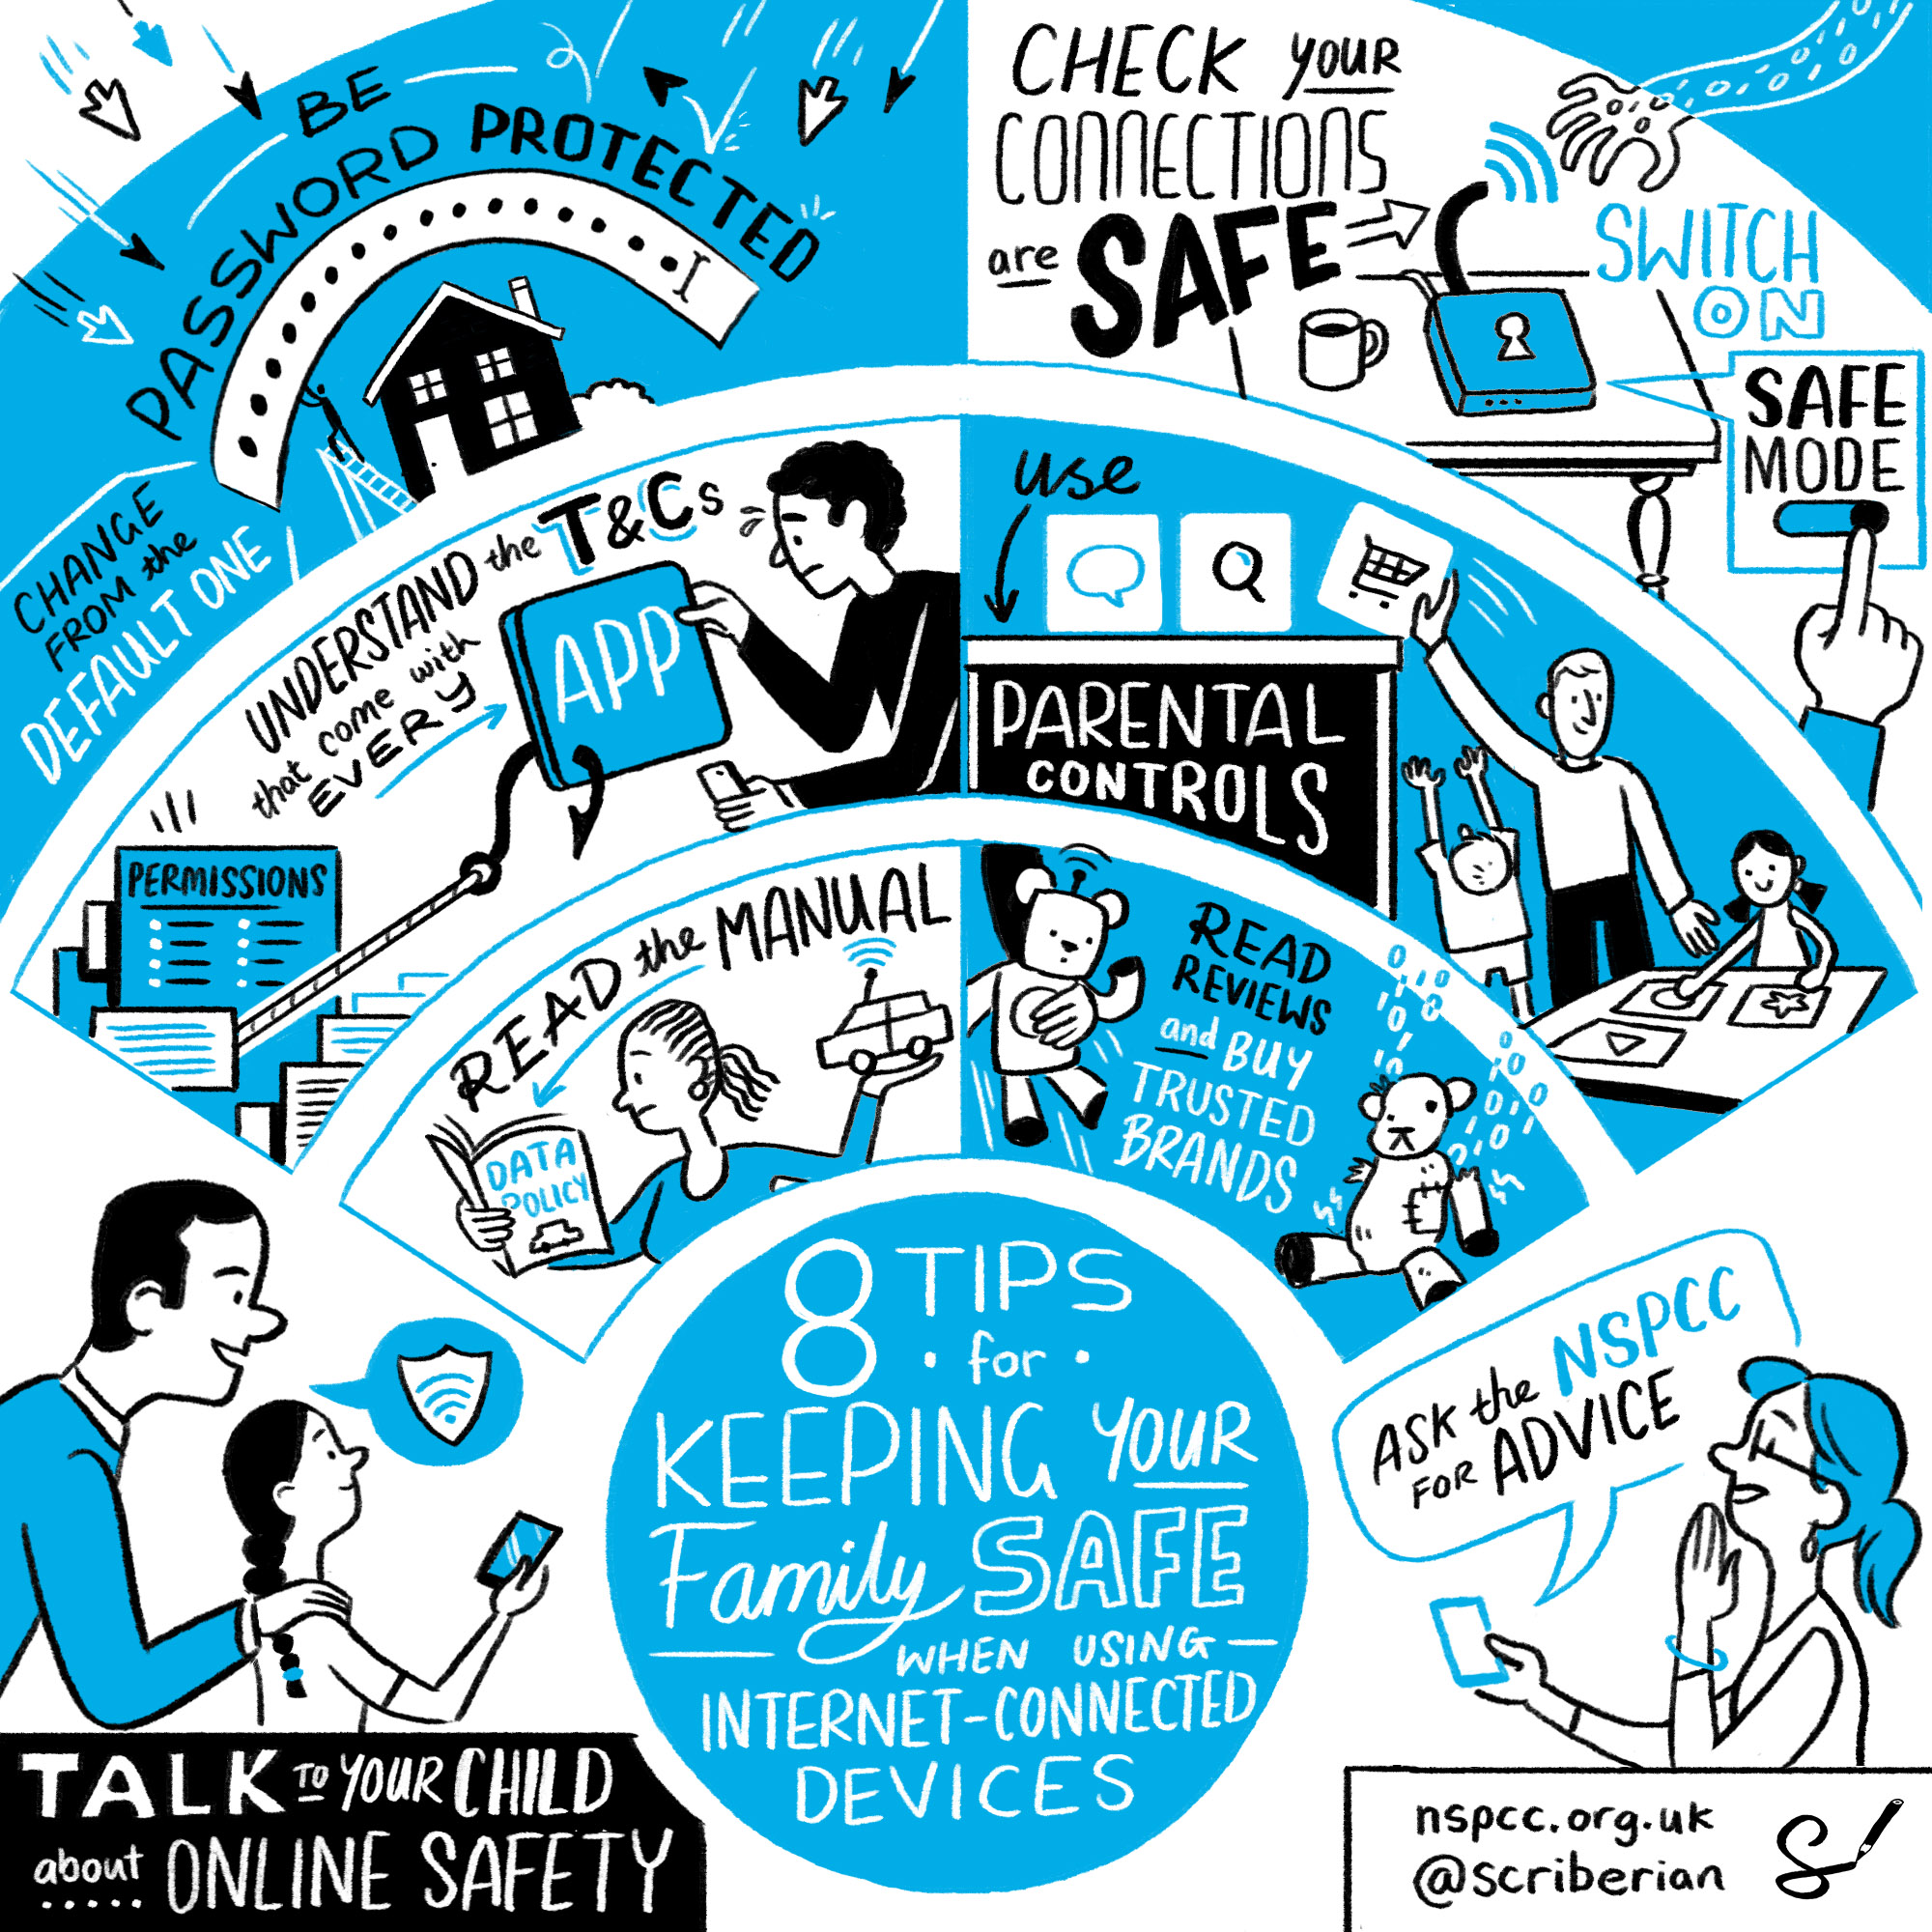 8 tips for keeping your family safe when using internet-connected devices. Source:  NSPCC